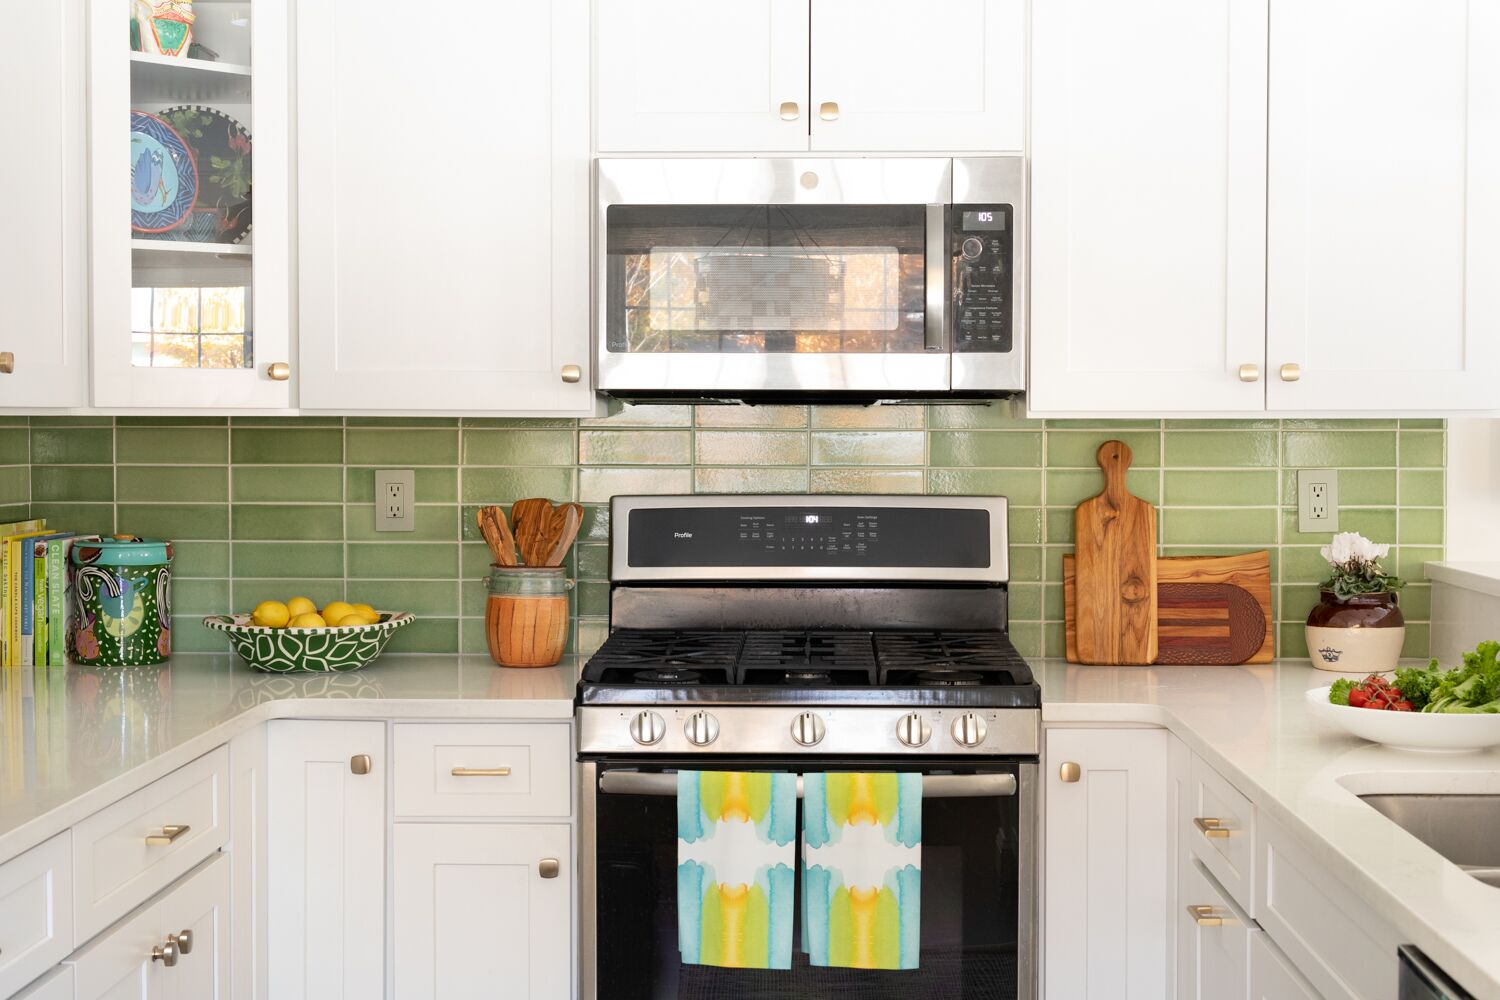 white kitchen cabinets green back splash tiles